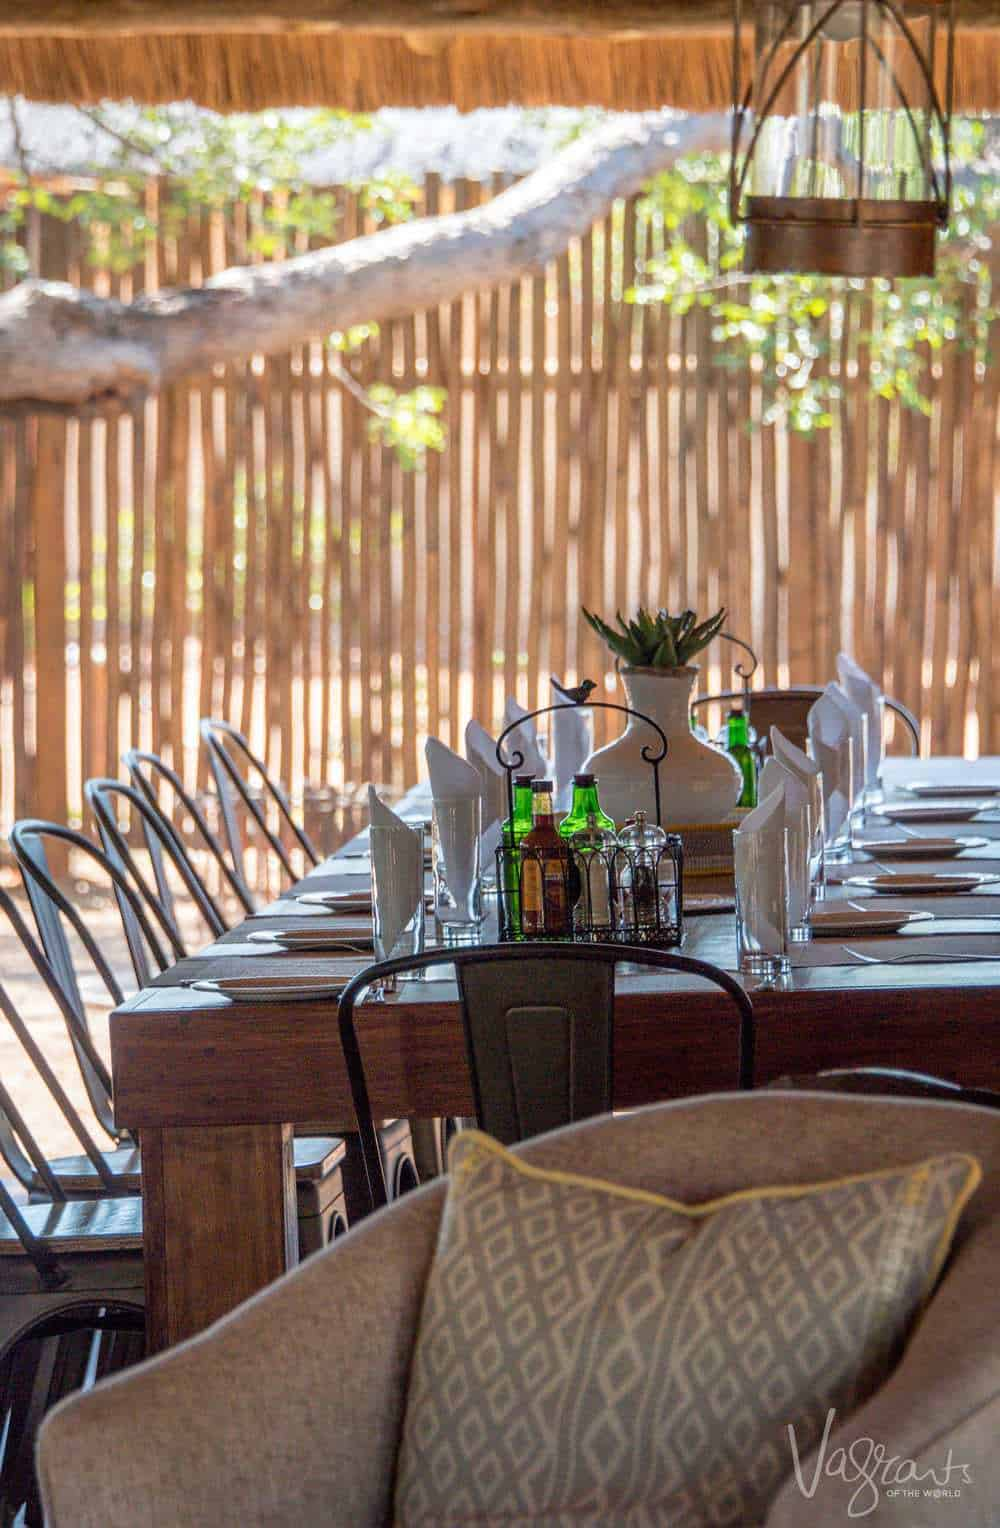 There's something about South African safari lodges. Is it the relaxed atmosphere?